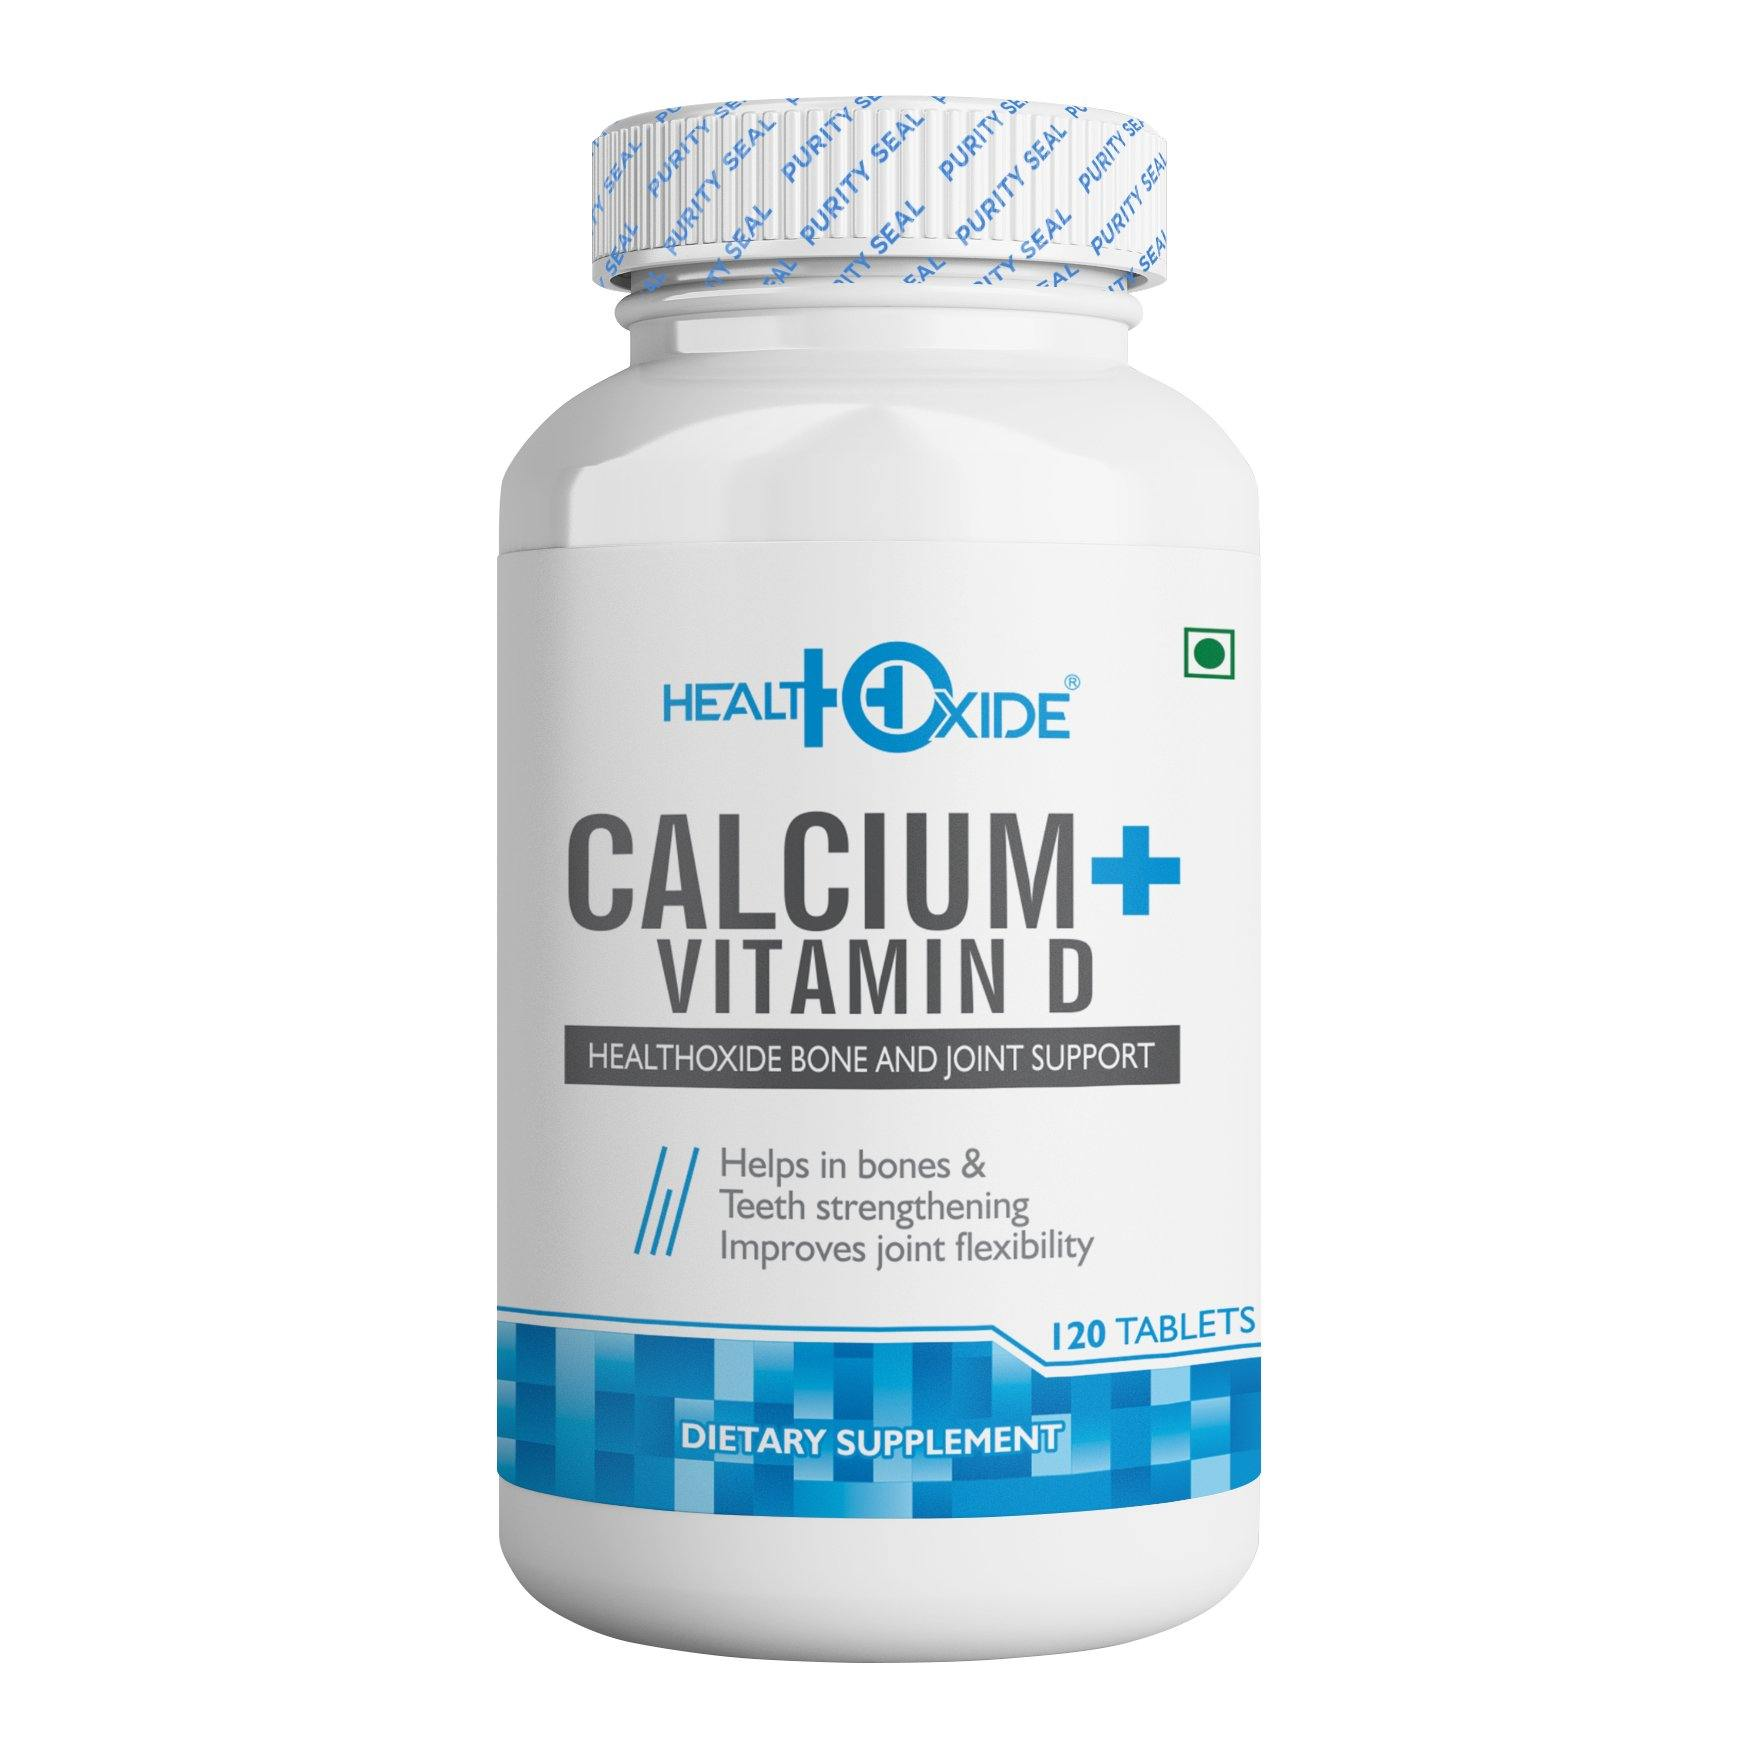 HealthOxide Calcium 625 mg + Vitamin D 400 IU– 120 Tablets - HealthOxide